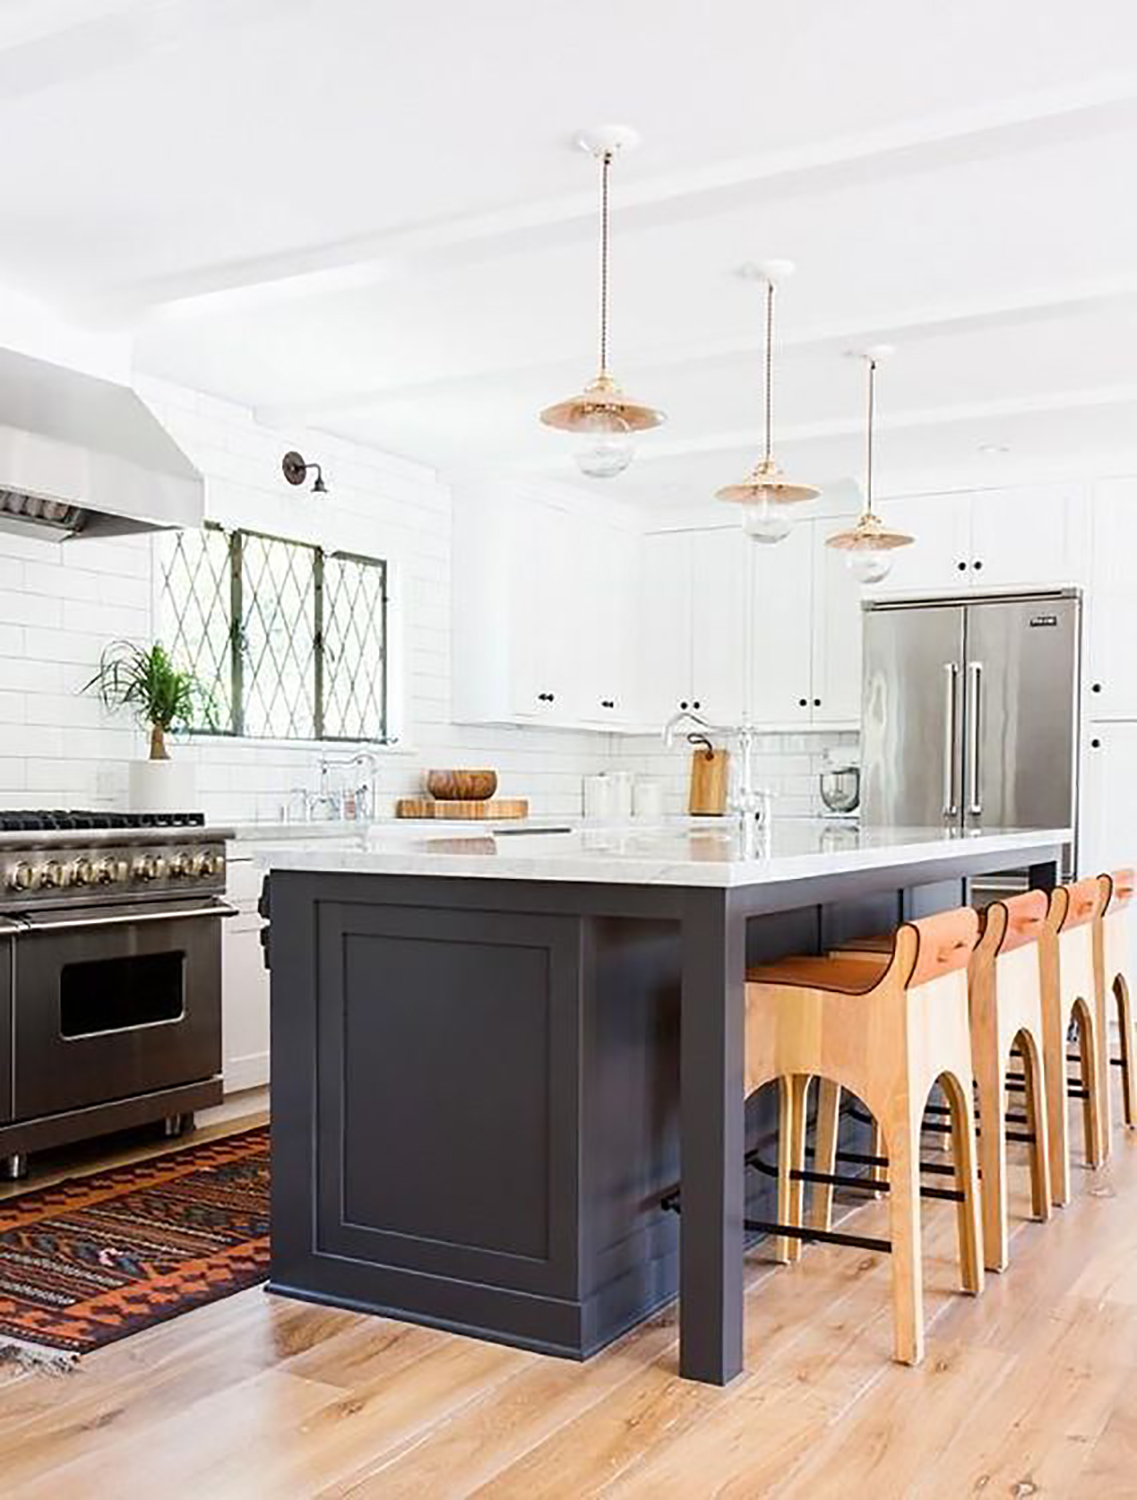 Two Toned Kitchens - Amber Interiors.jpg